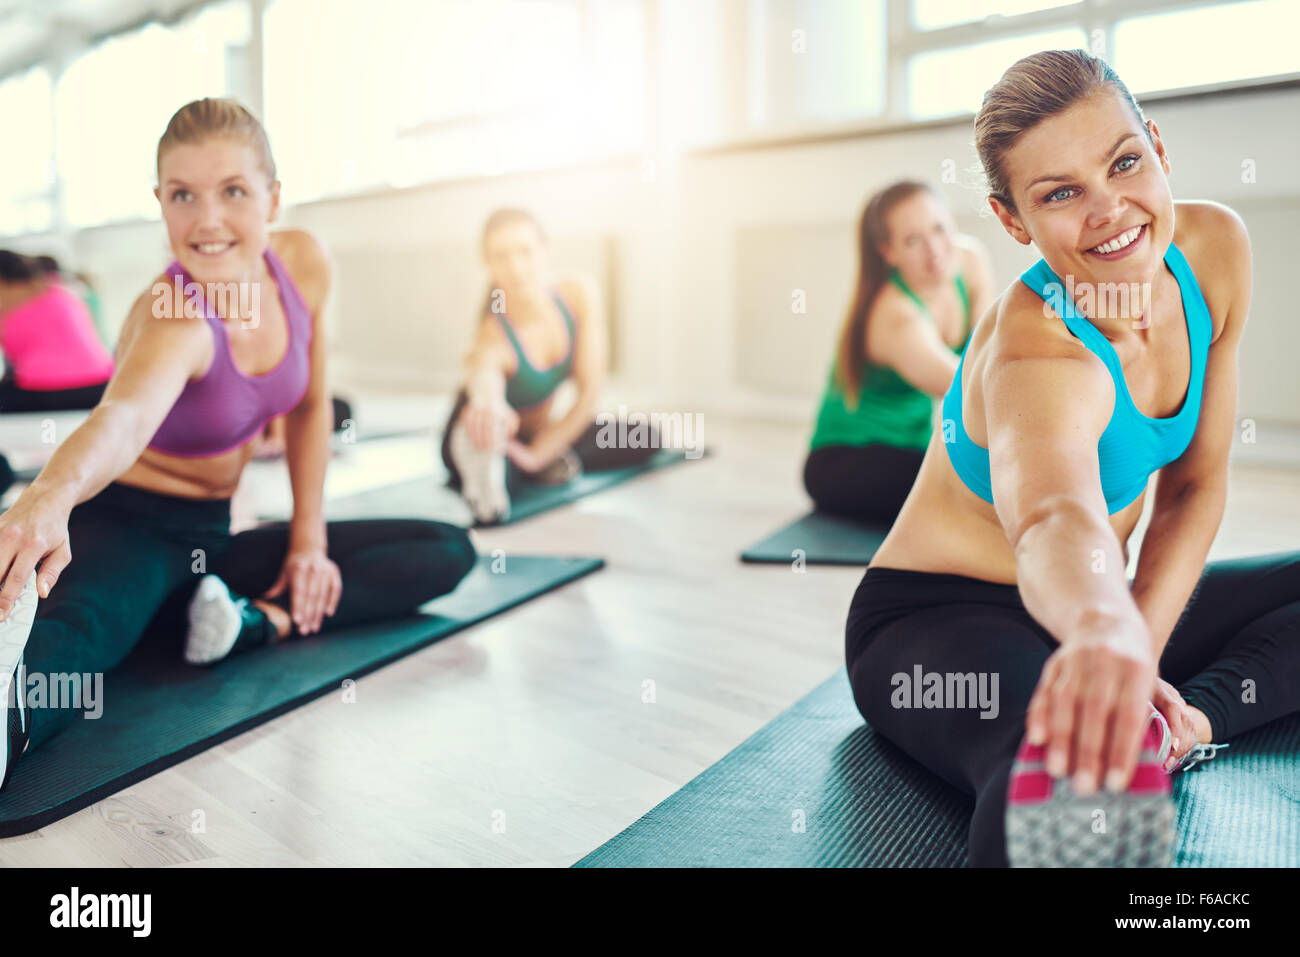 group of healthy women in a fitness class fitness sport training